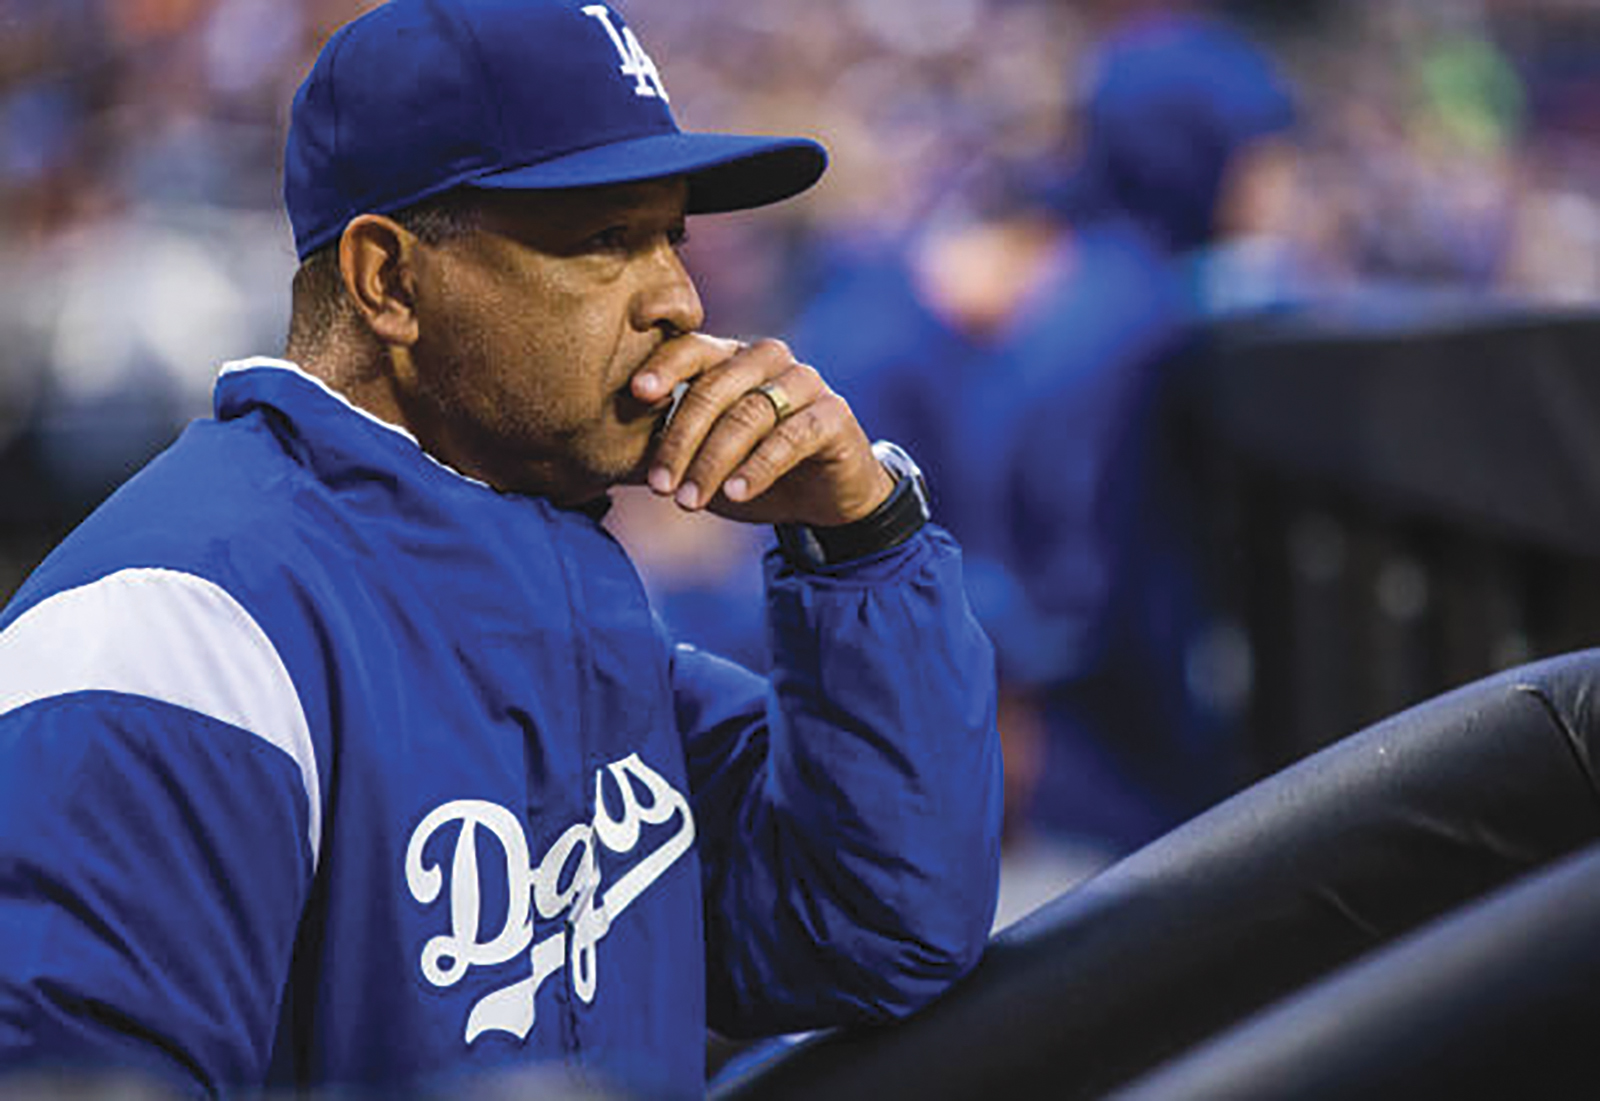 Dodgers manager Dave Roberts does not want his team to become complacent.